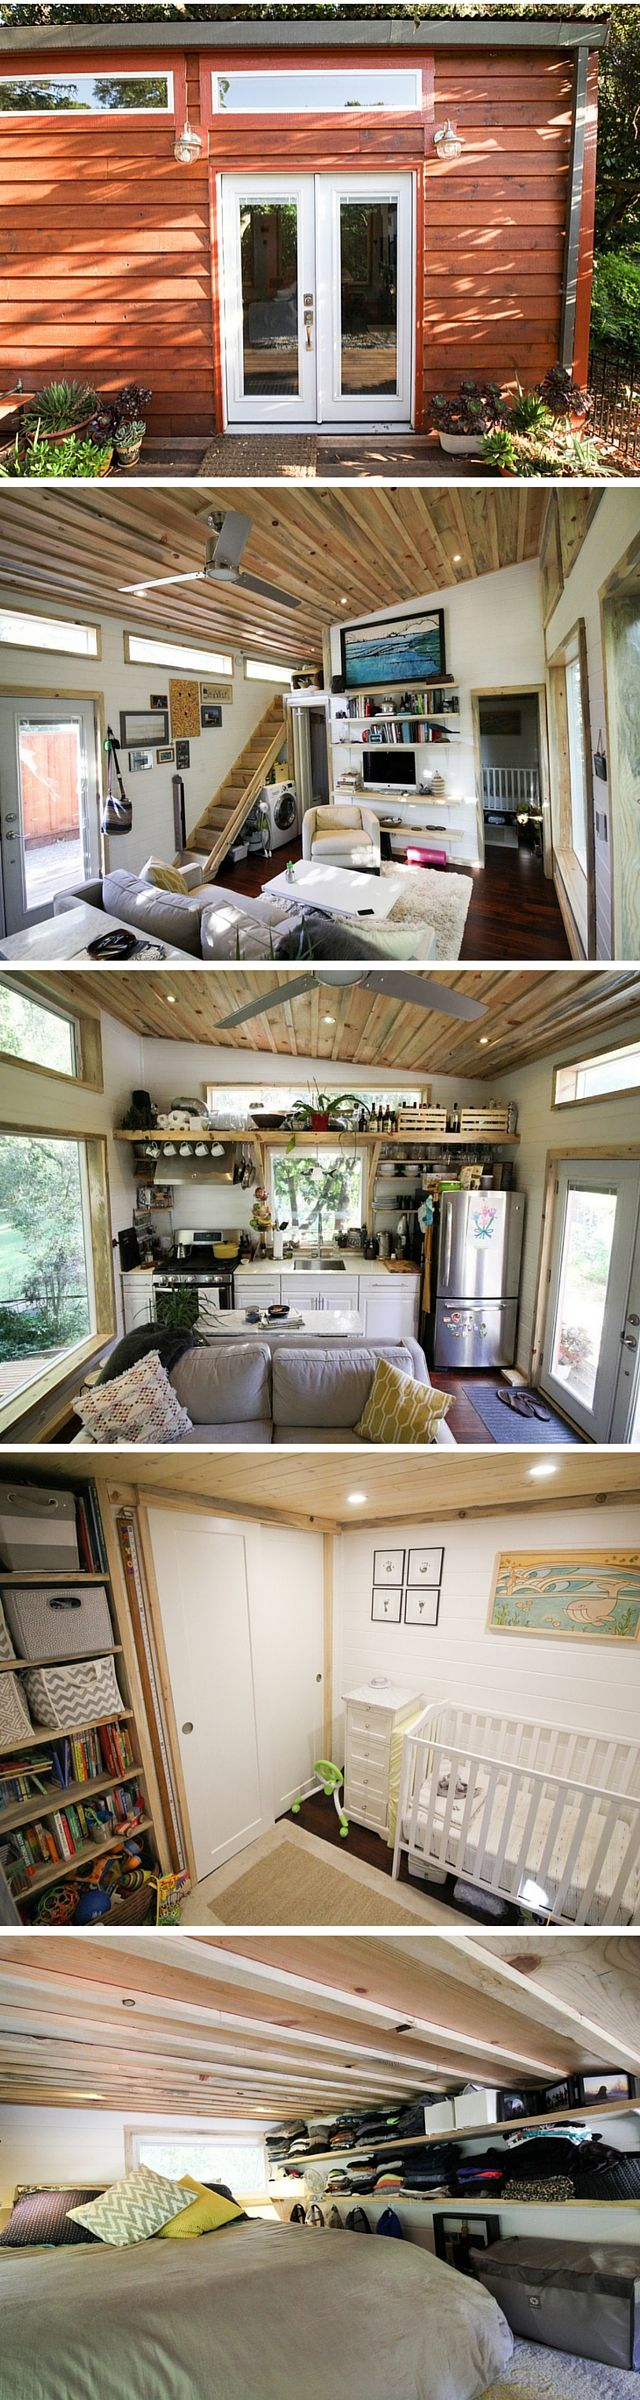 Best Ideas About Model Home Decorating On Pinterest Living - Model home interior design